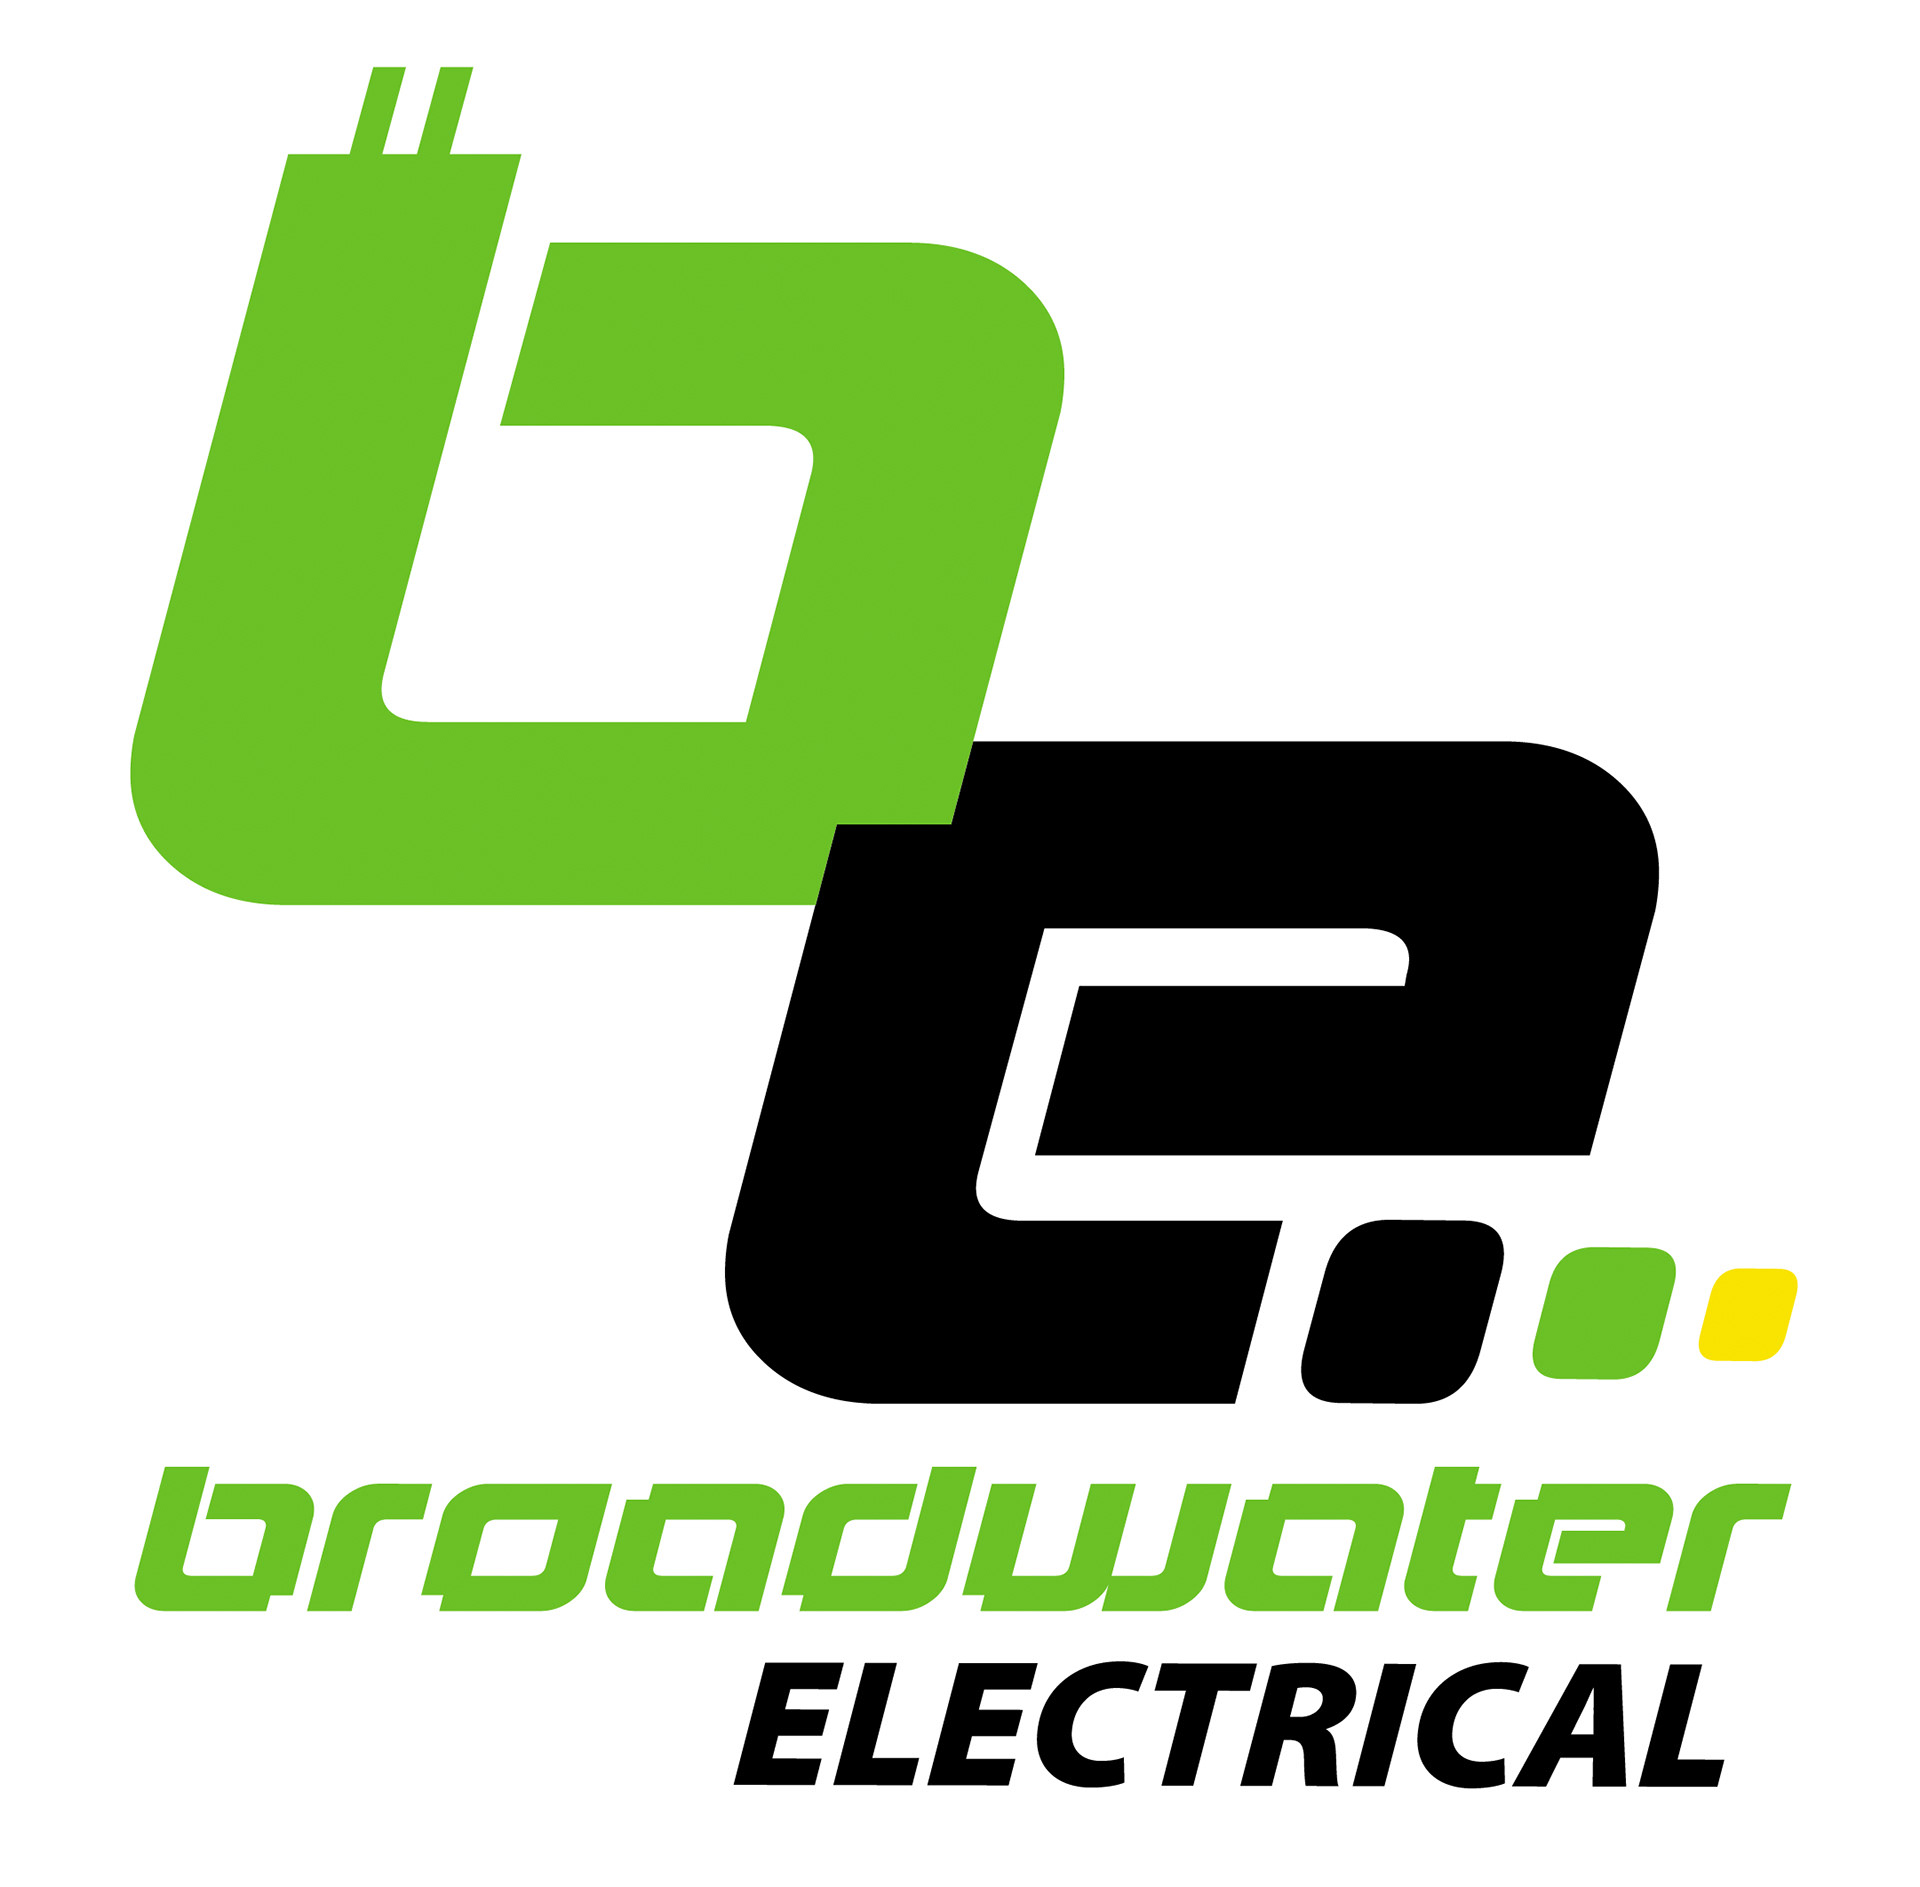 Michelle craik broadwater electrical logo and business card design broadwater electrical logo and business card design colourmoves